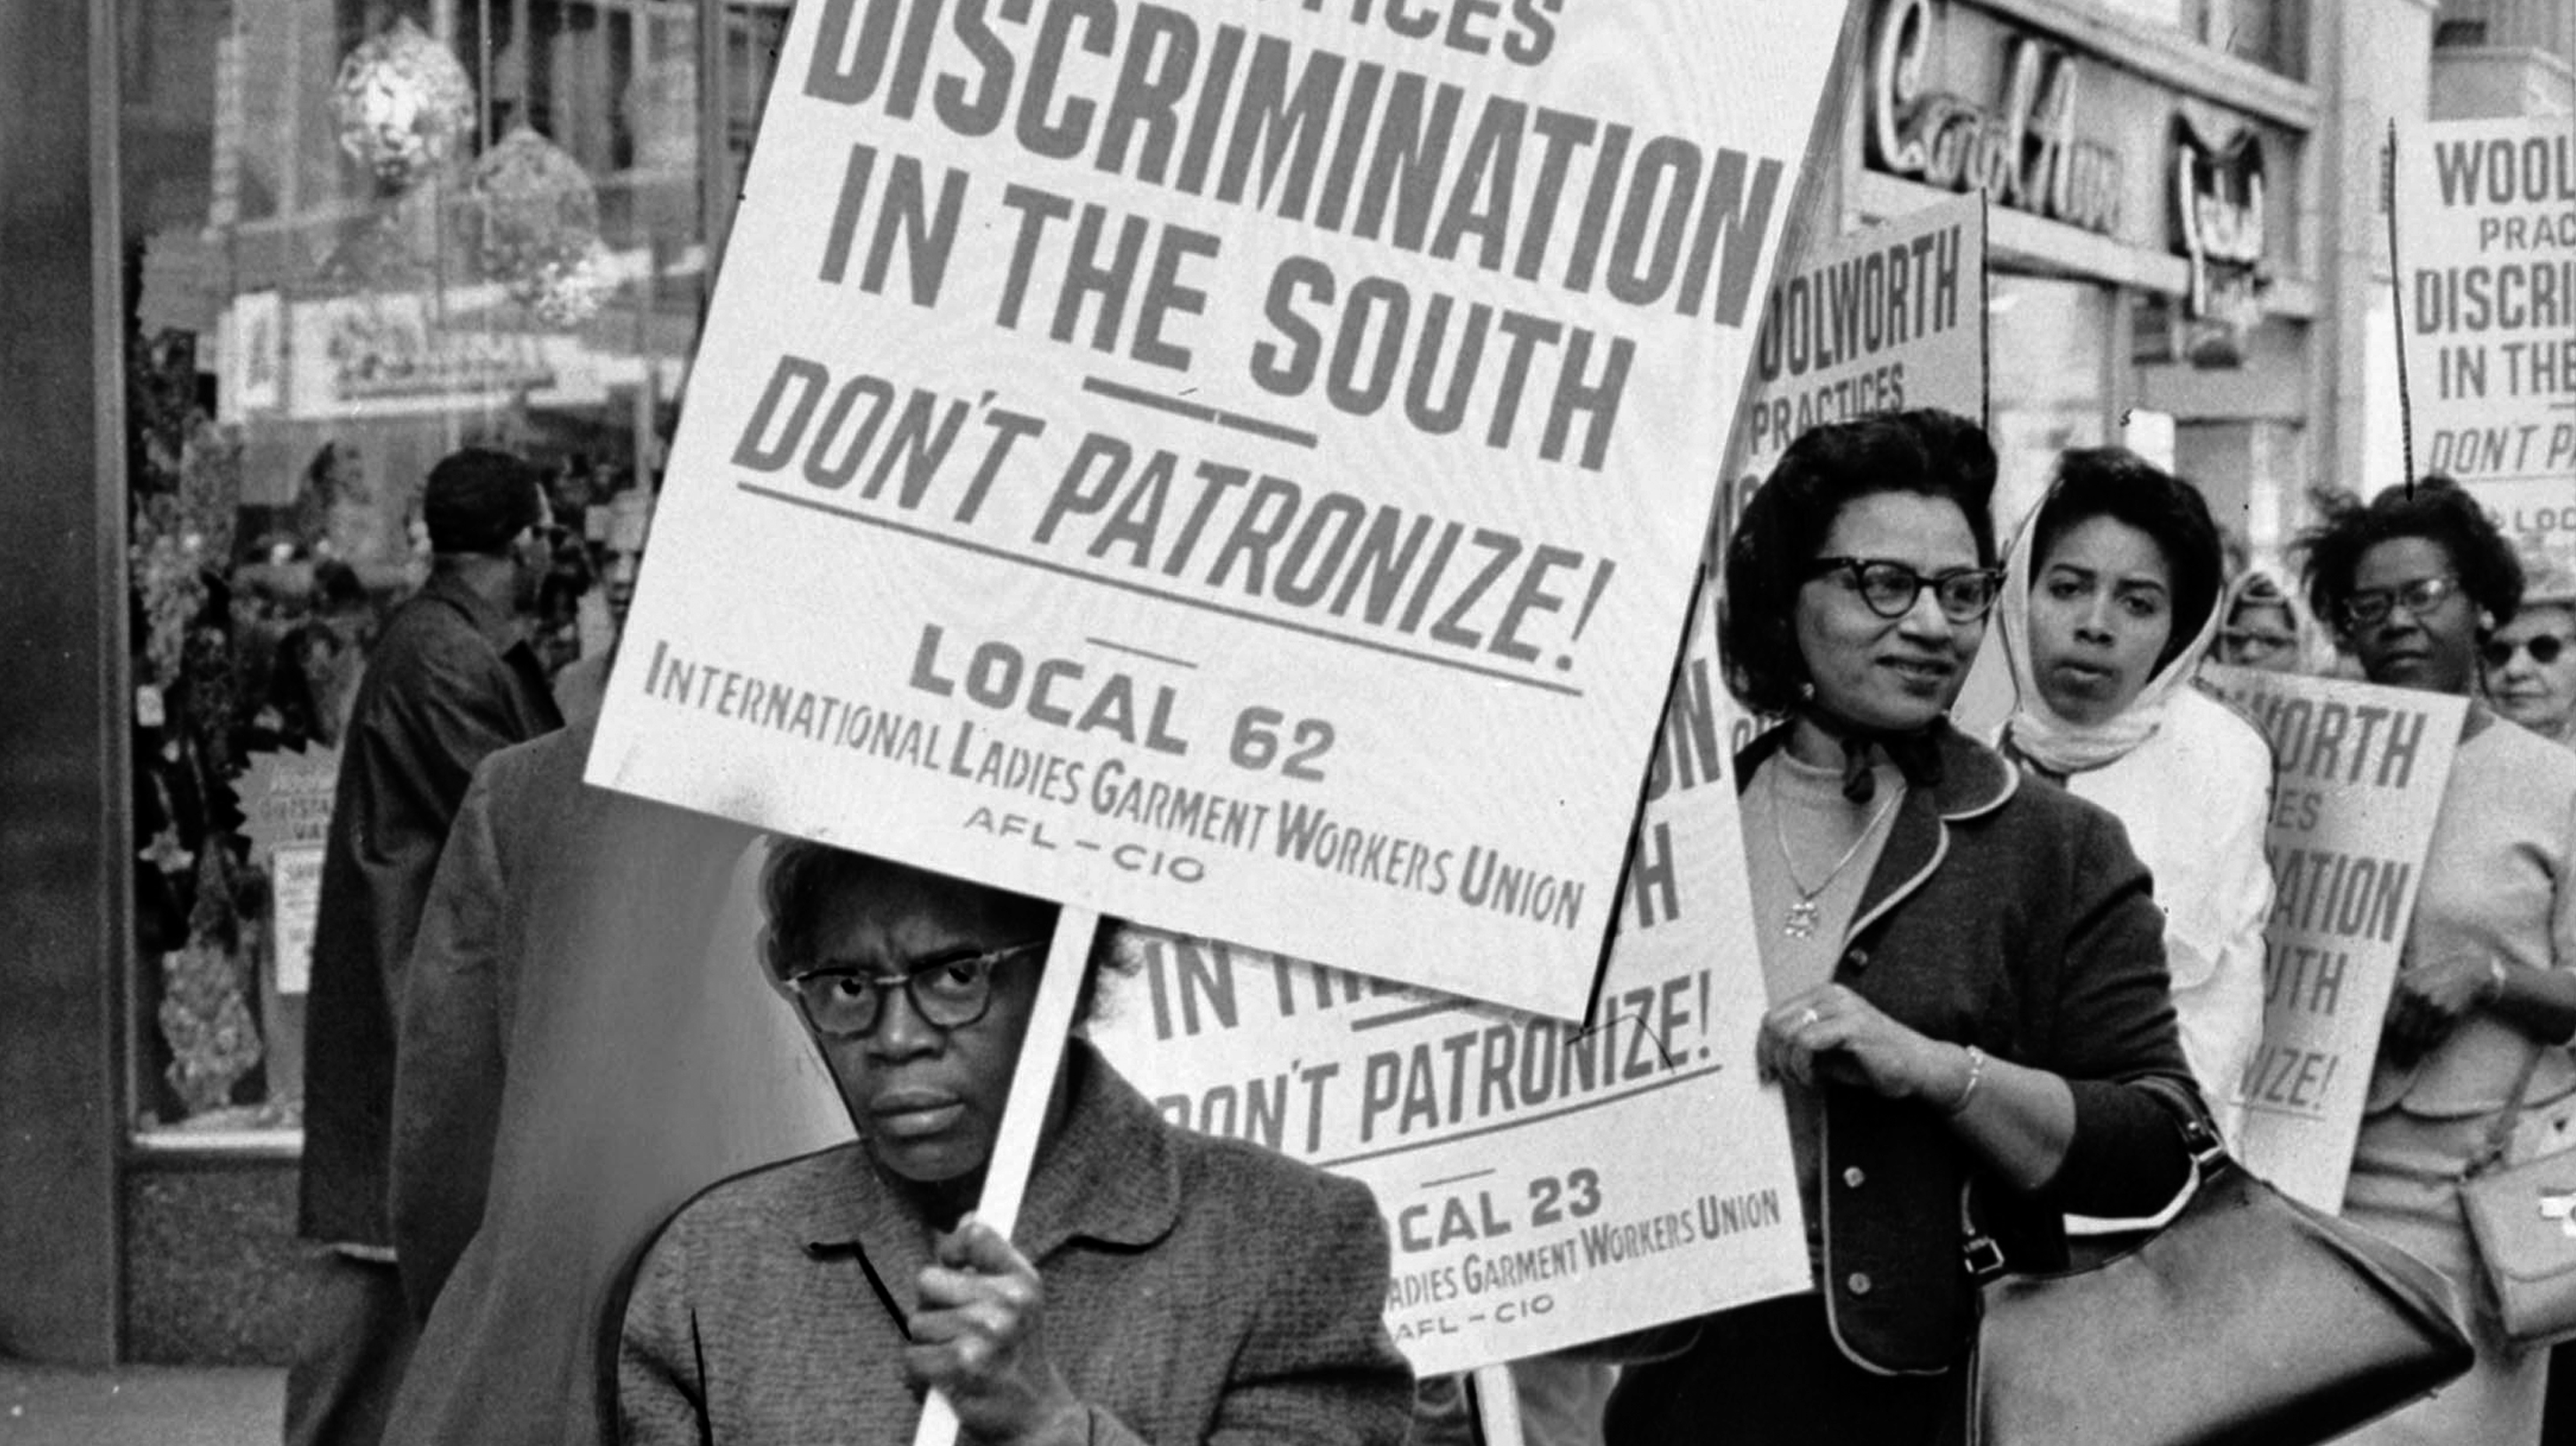 Picket against the Woolworth Company's practice of segregation, April 20, 1963. Image: Kheel Center/Cornell University.